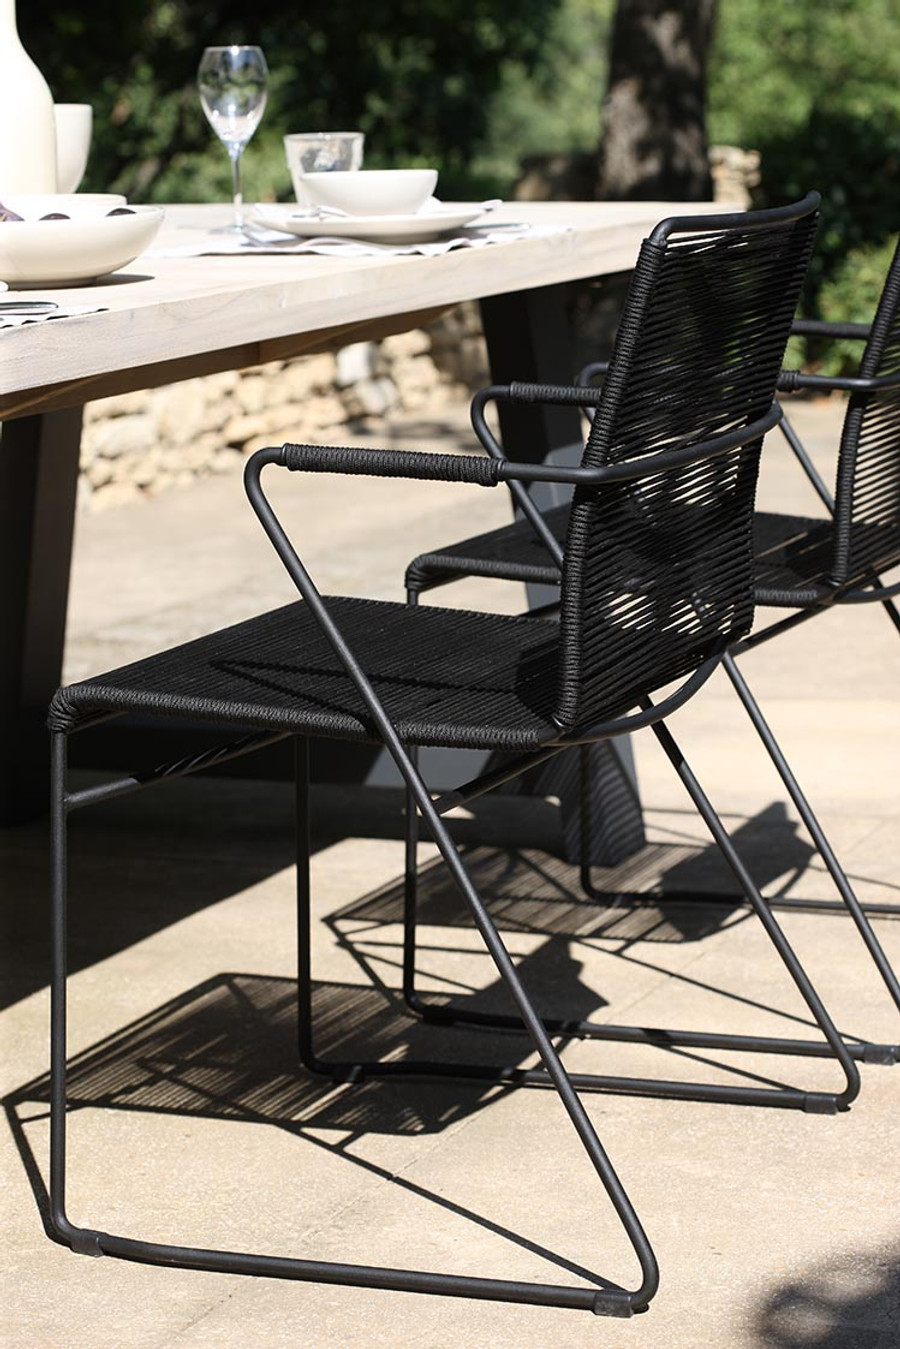 James outdoor dining arm chair in Lava Rope used with the Beach dining table